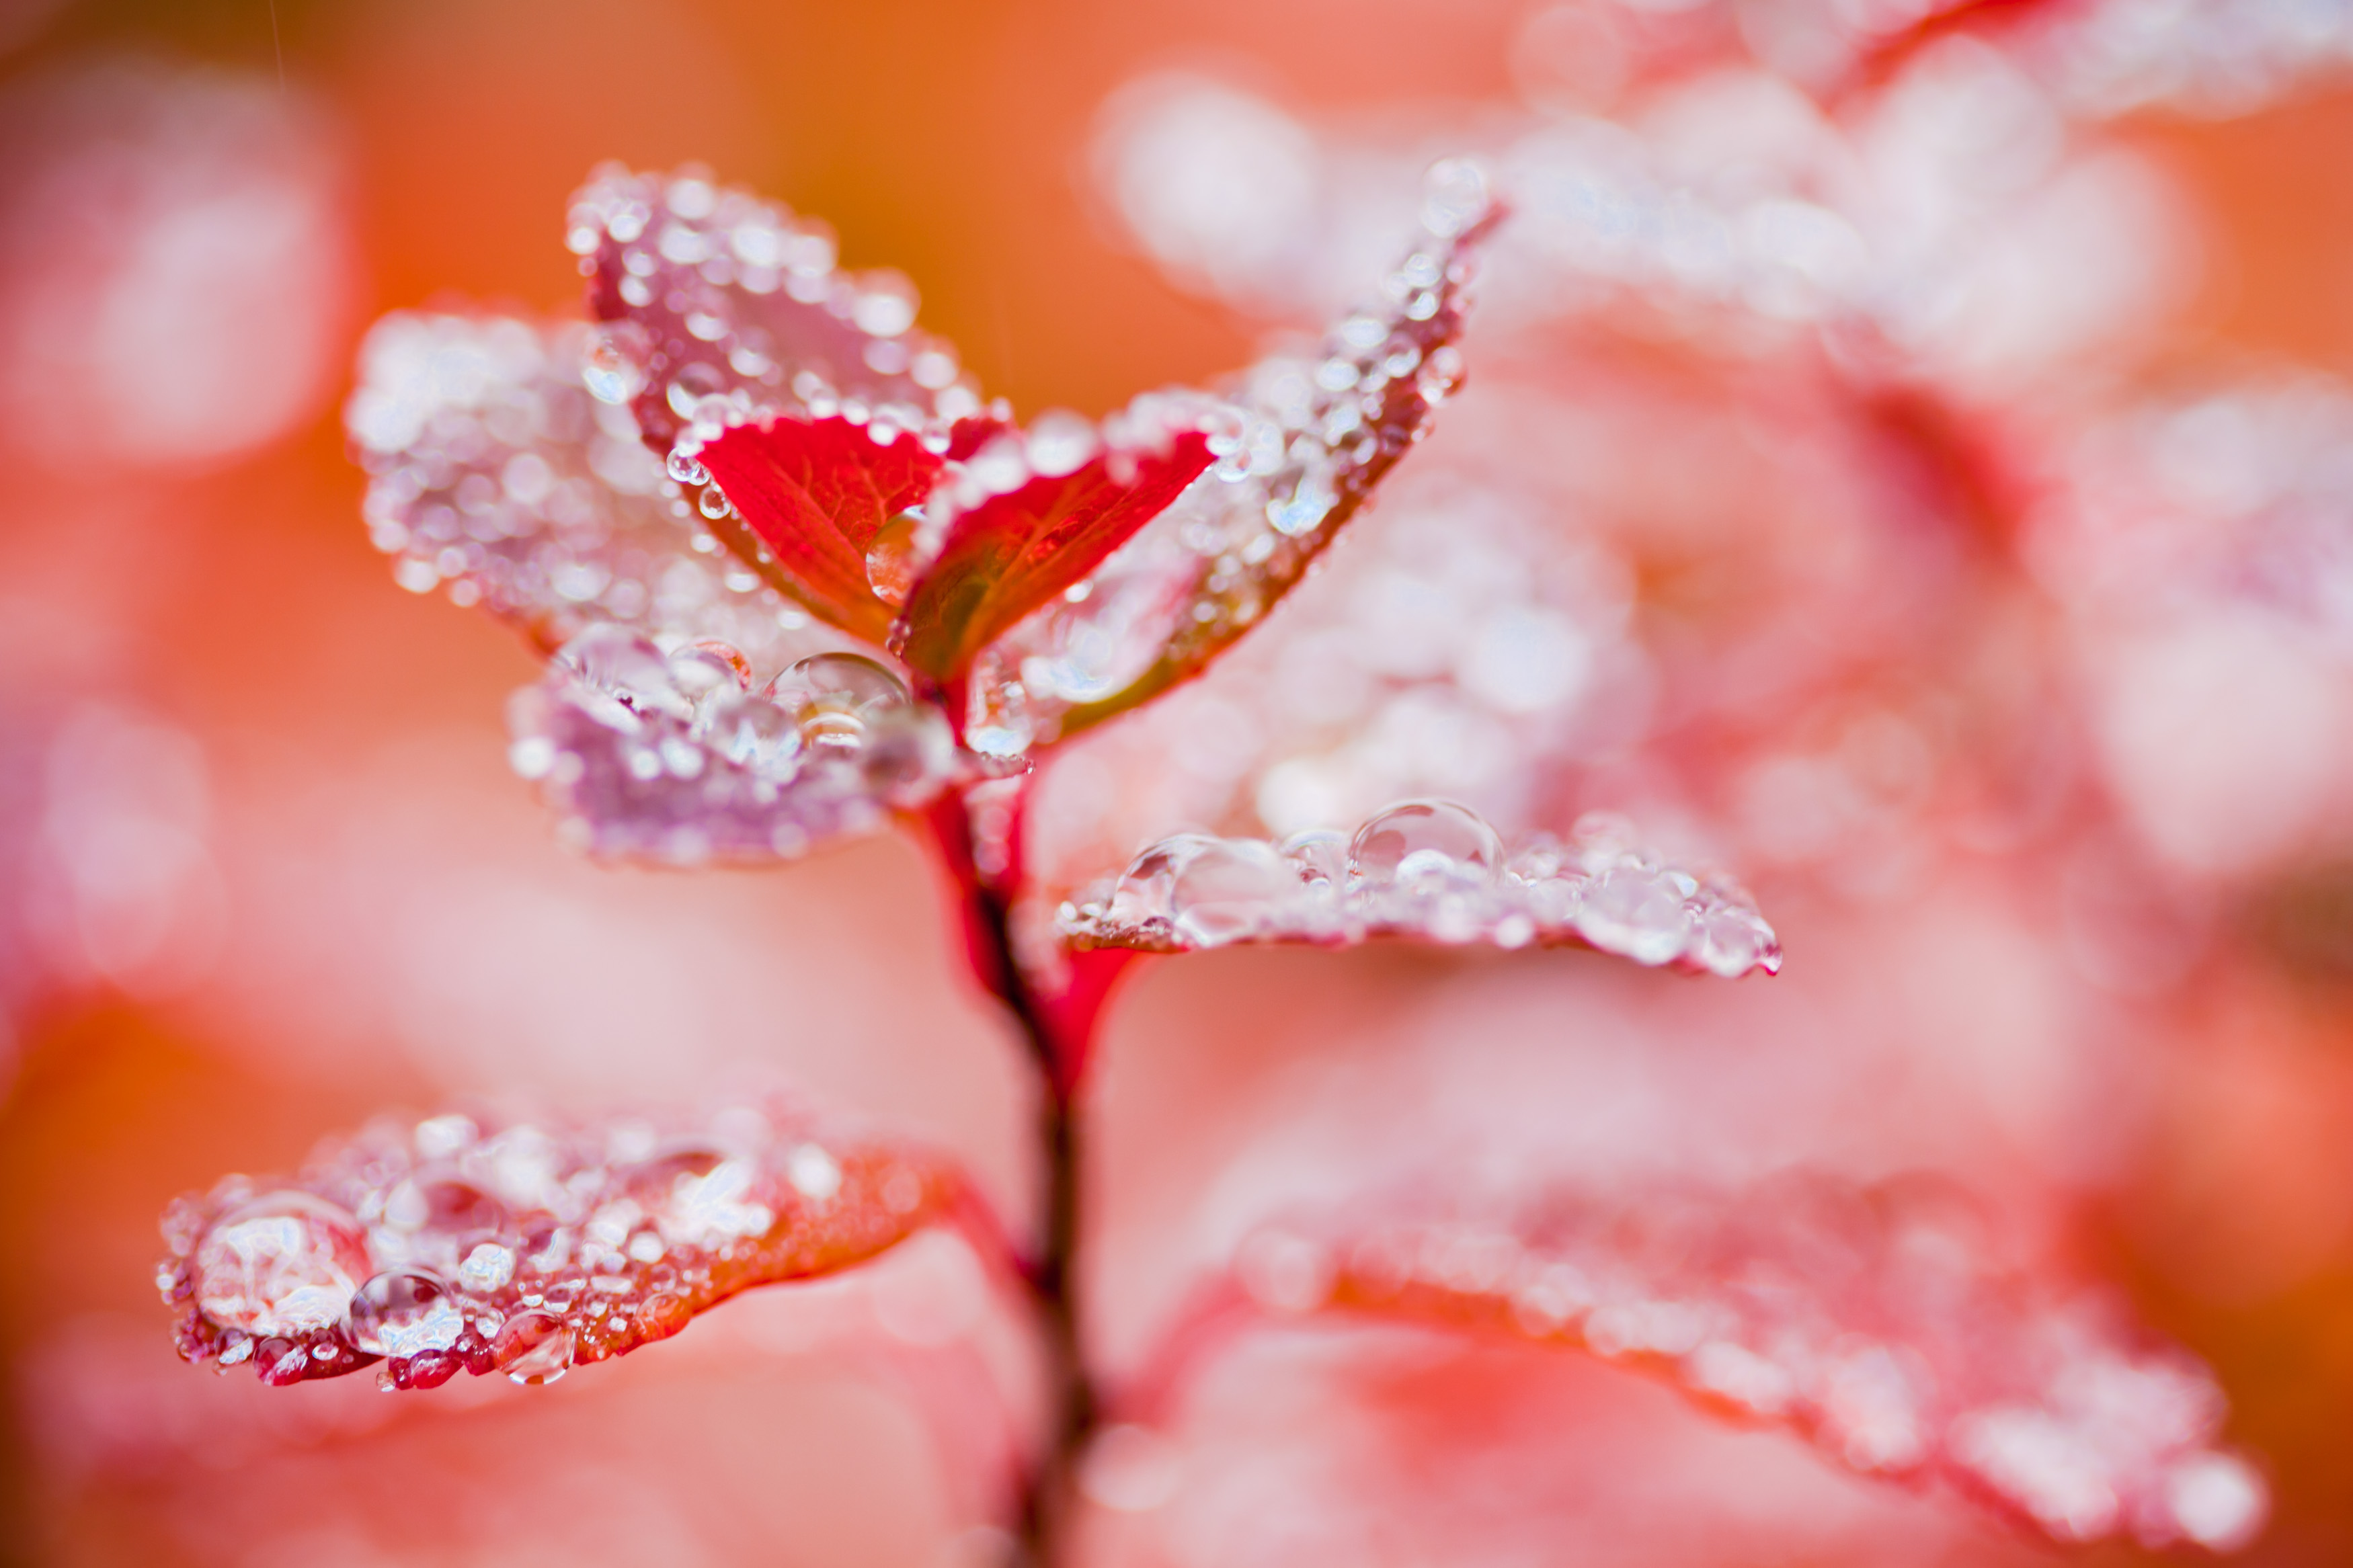 Droplets on autumn leaves photo